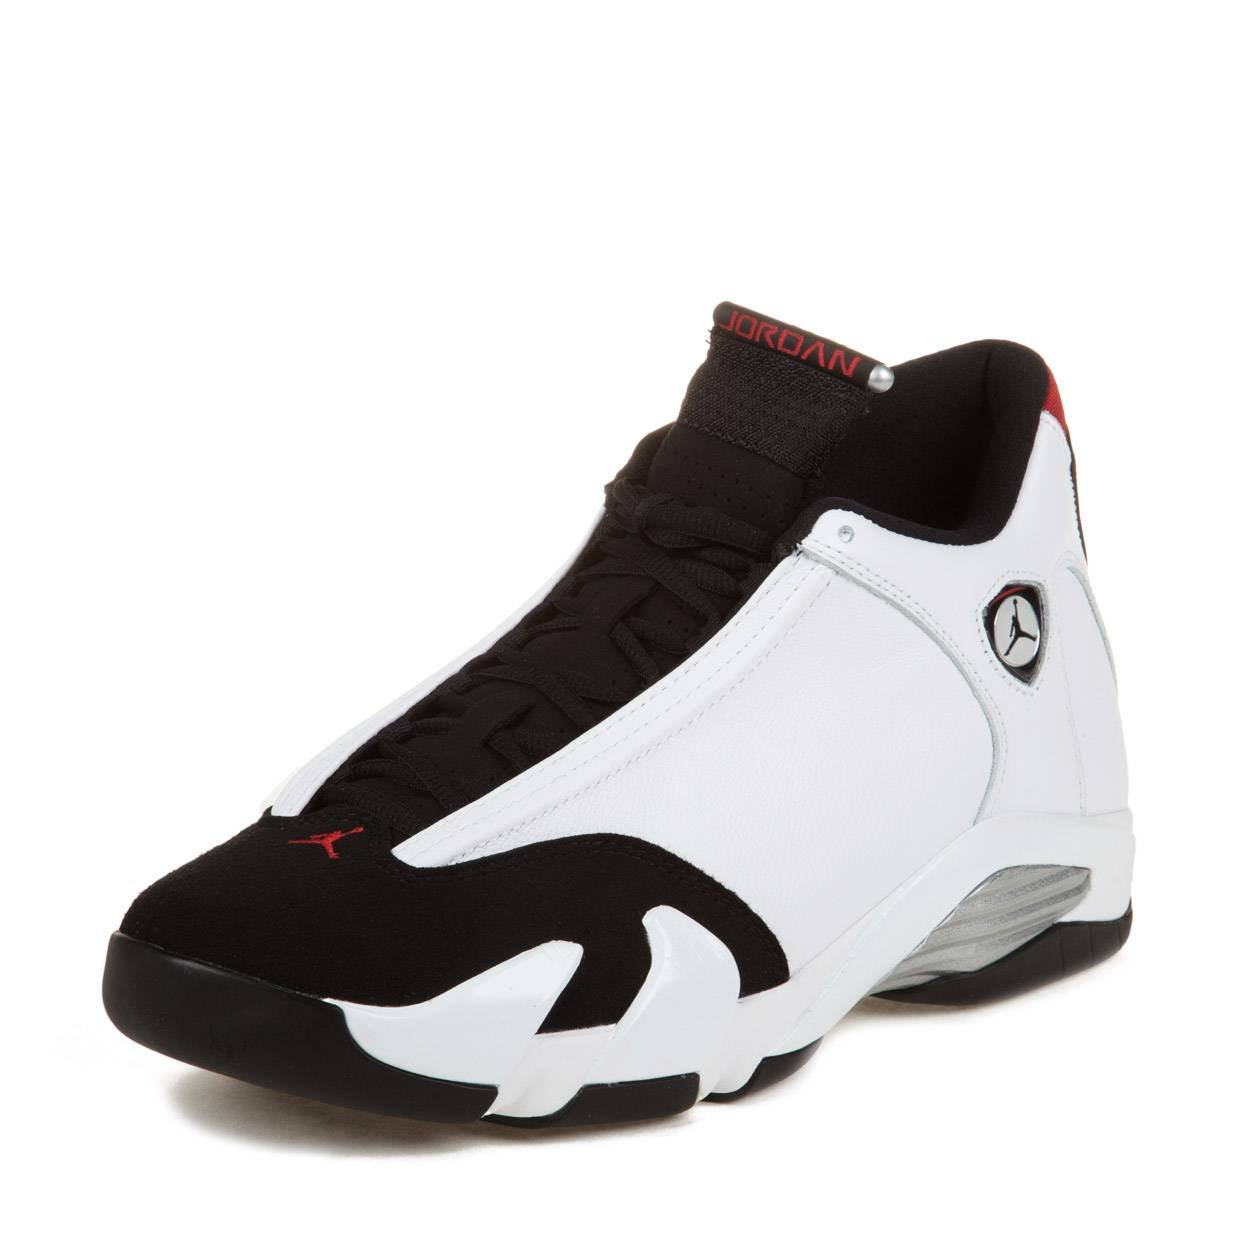 b224a7d10967c3 Galleon - Nike Mens Air Jordan 14 Retro Black Toe White Black Varsity Red  Leather Athletic Sneakers Size 10